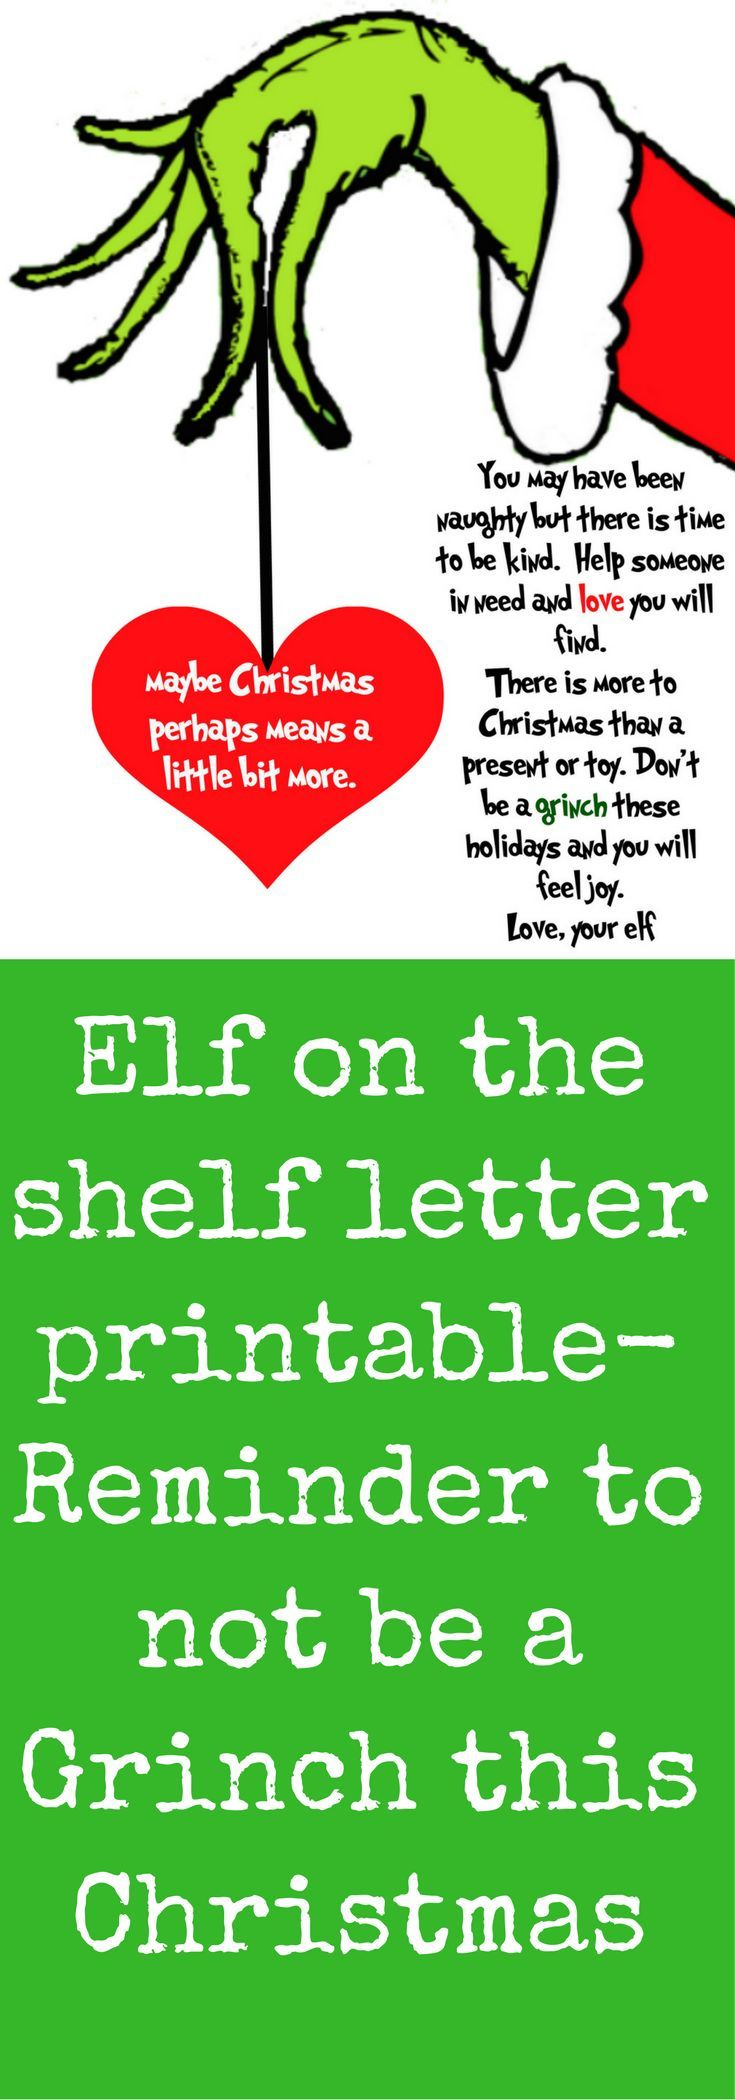 Naughty list Letter from your Elf on the Shelf reminding your kids to be kind and feel joy. #ElfontheShelf #elfontheshelfprintable Elf on the Shelf Free Printable Don't be a Grinch